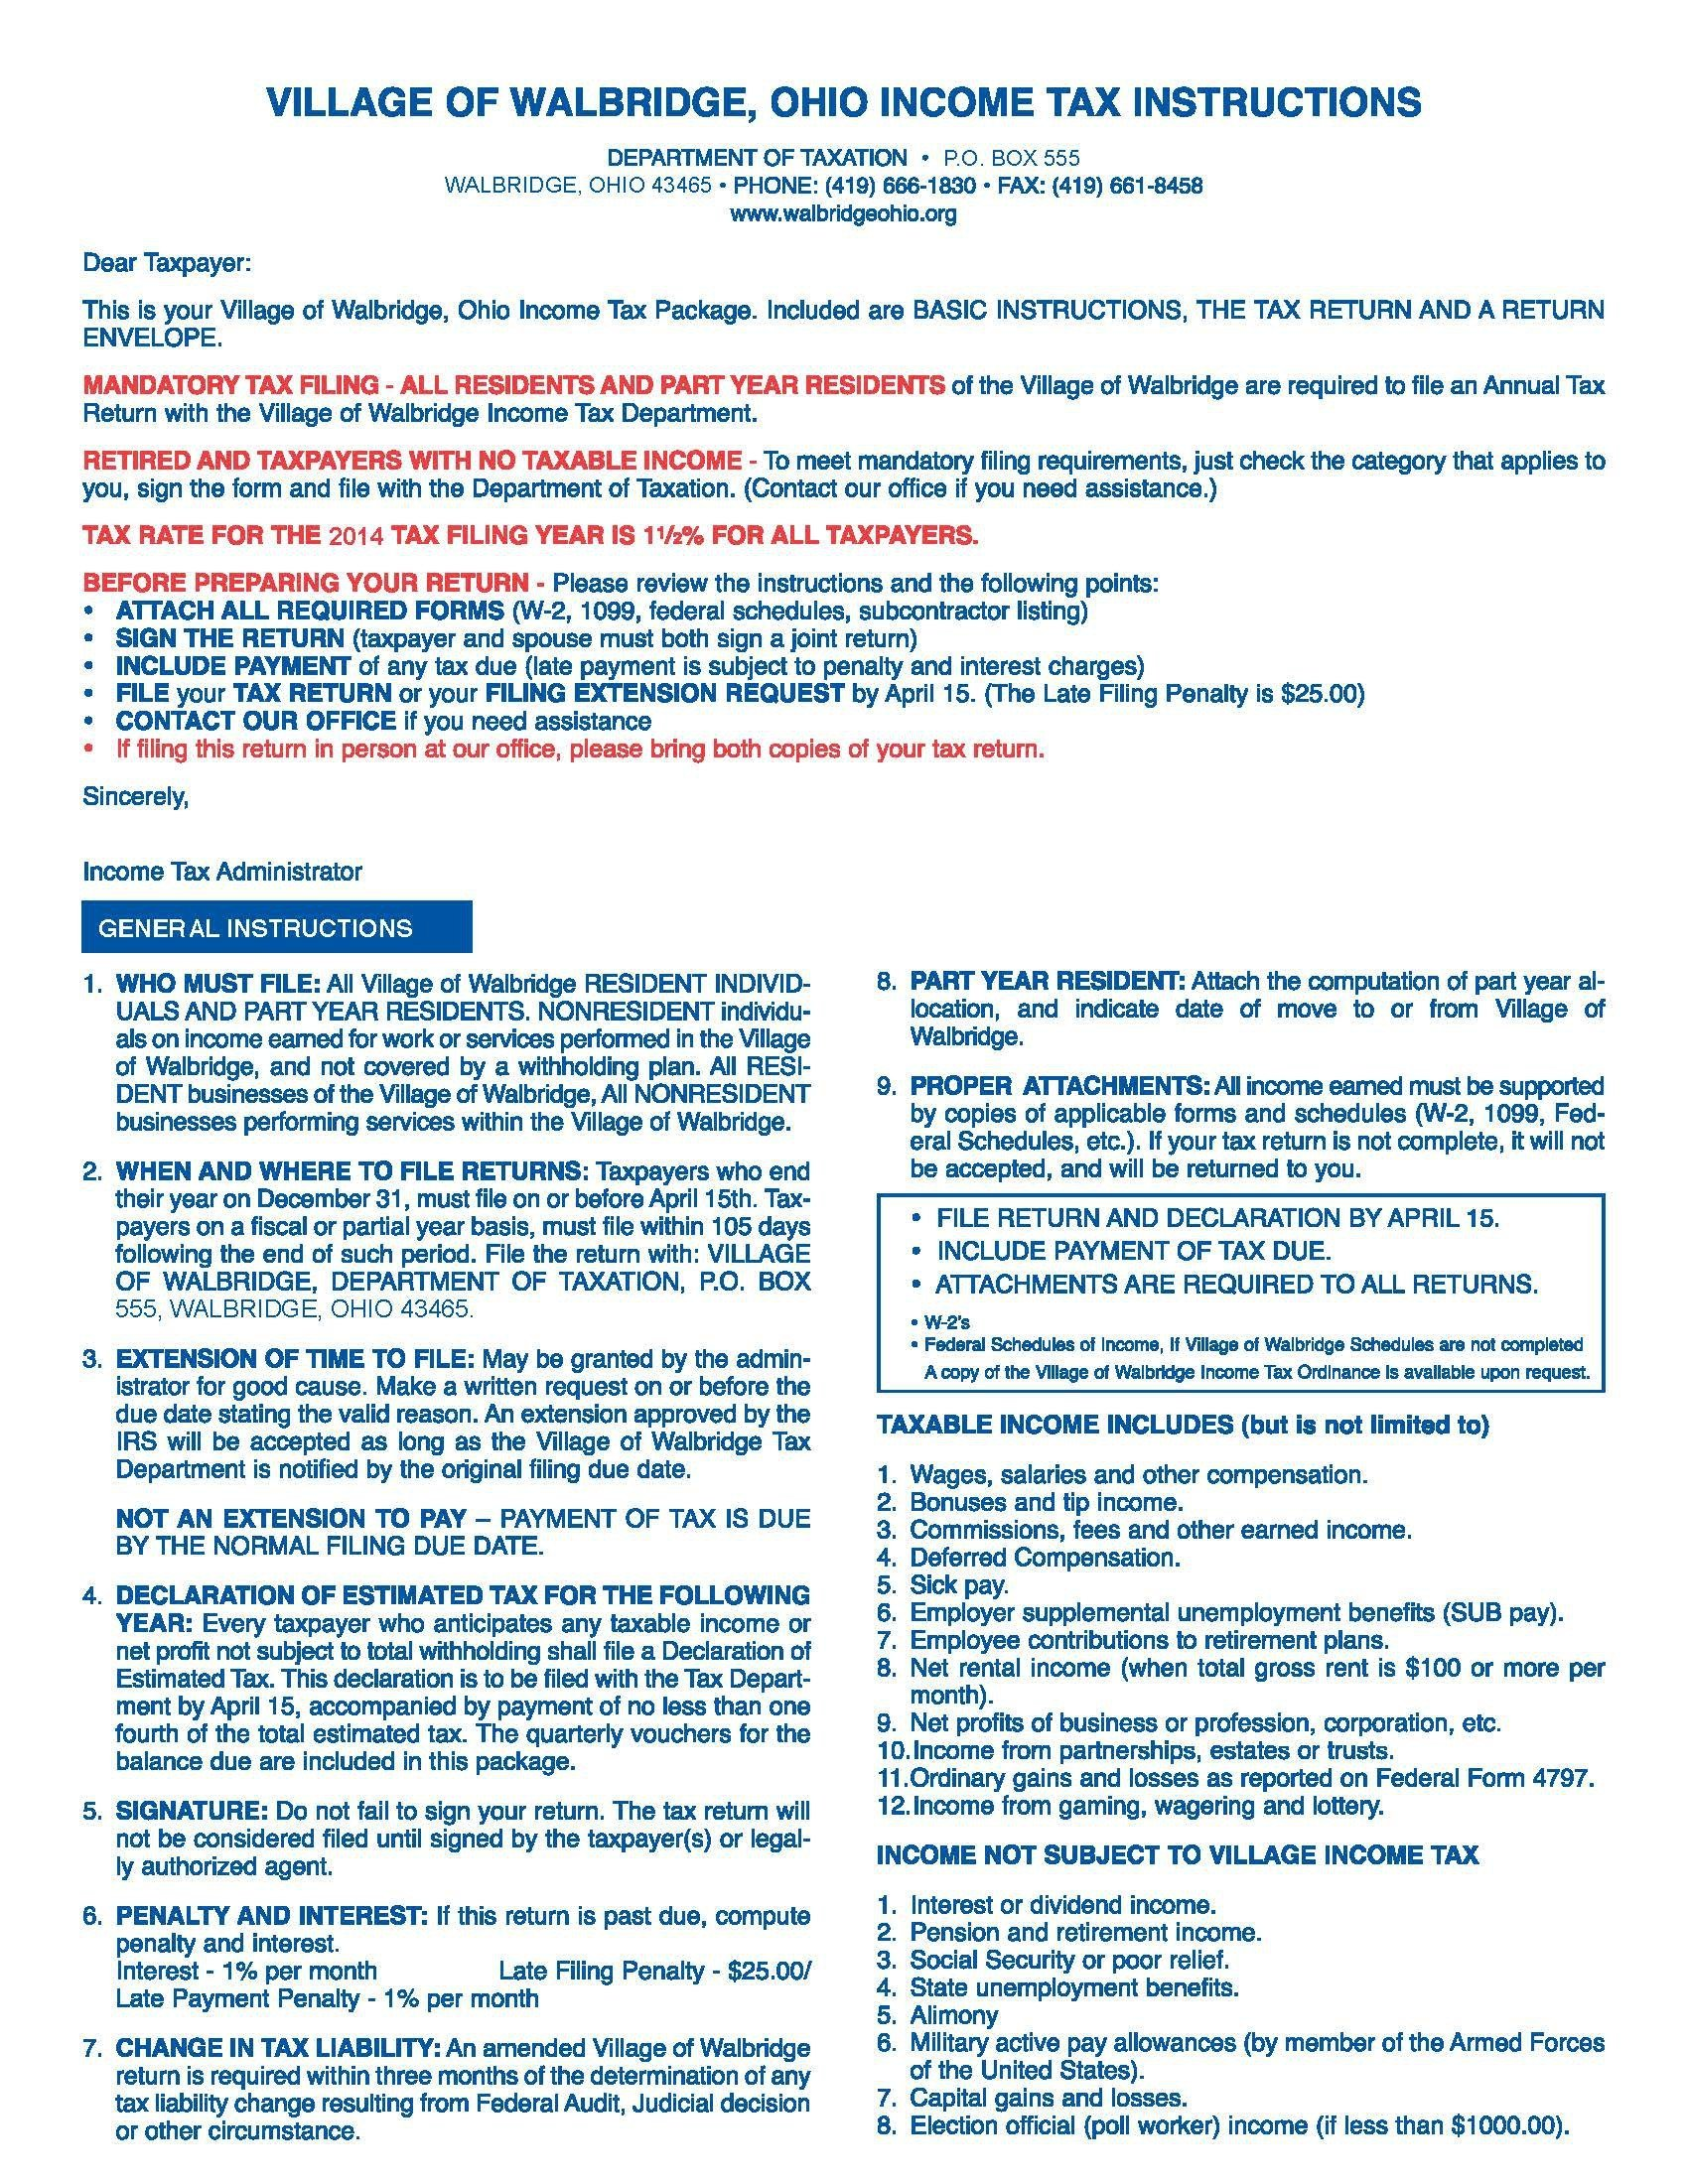 2014 Instructions Walbridge Local Income Tax Forms